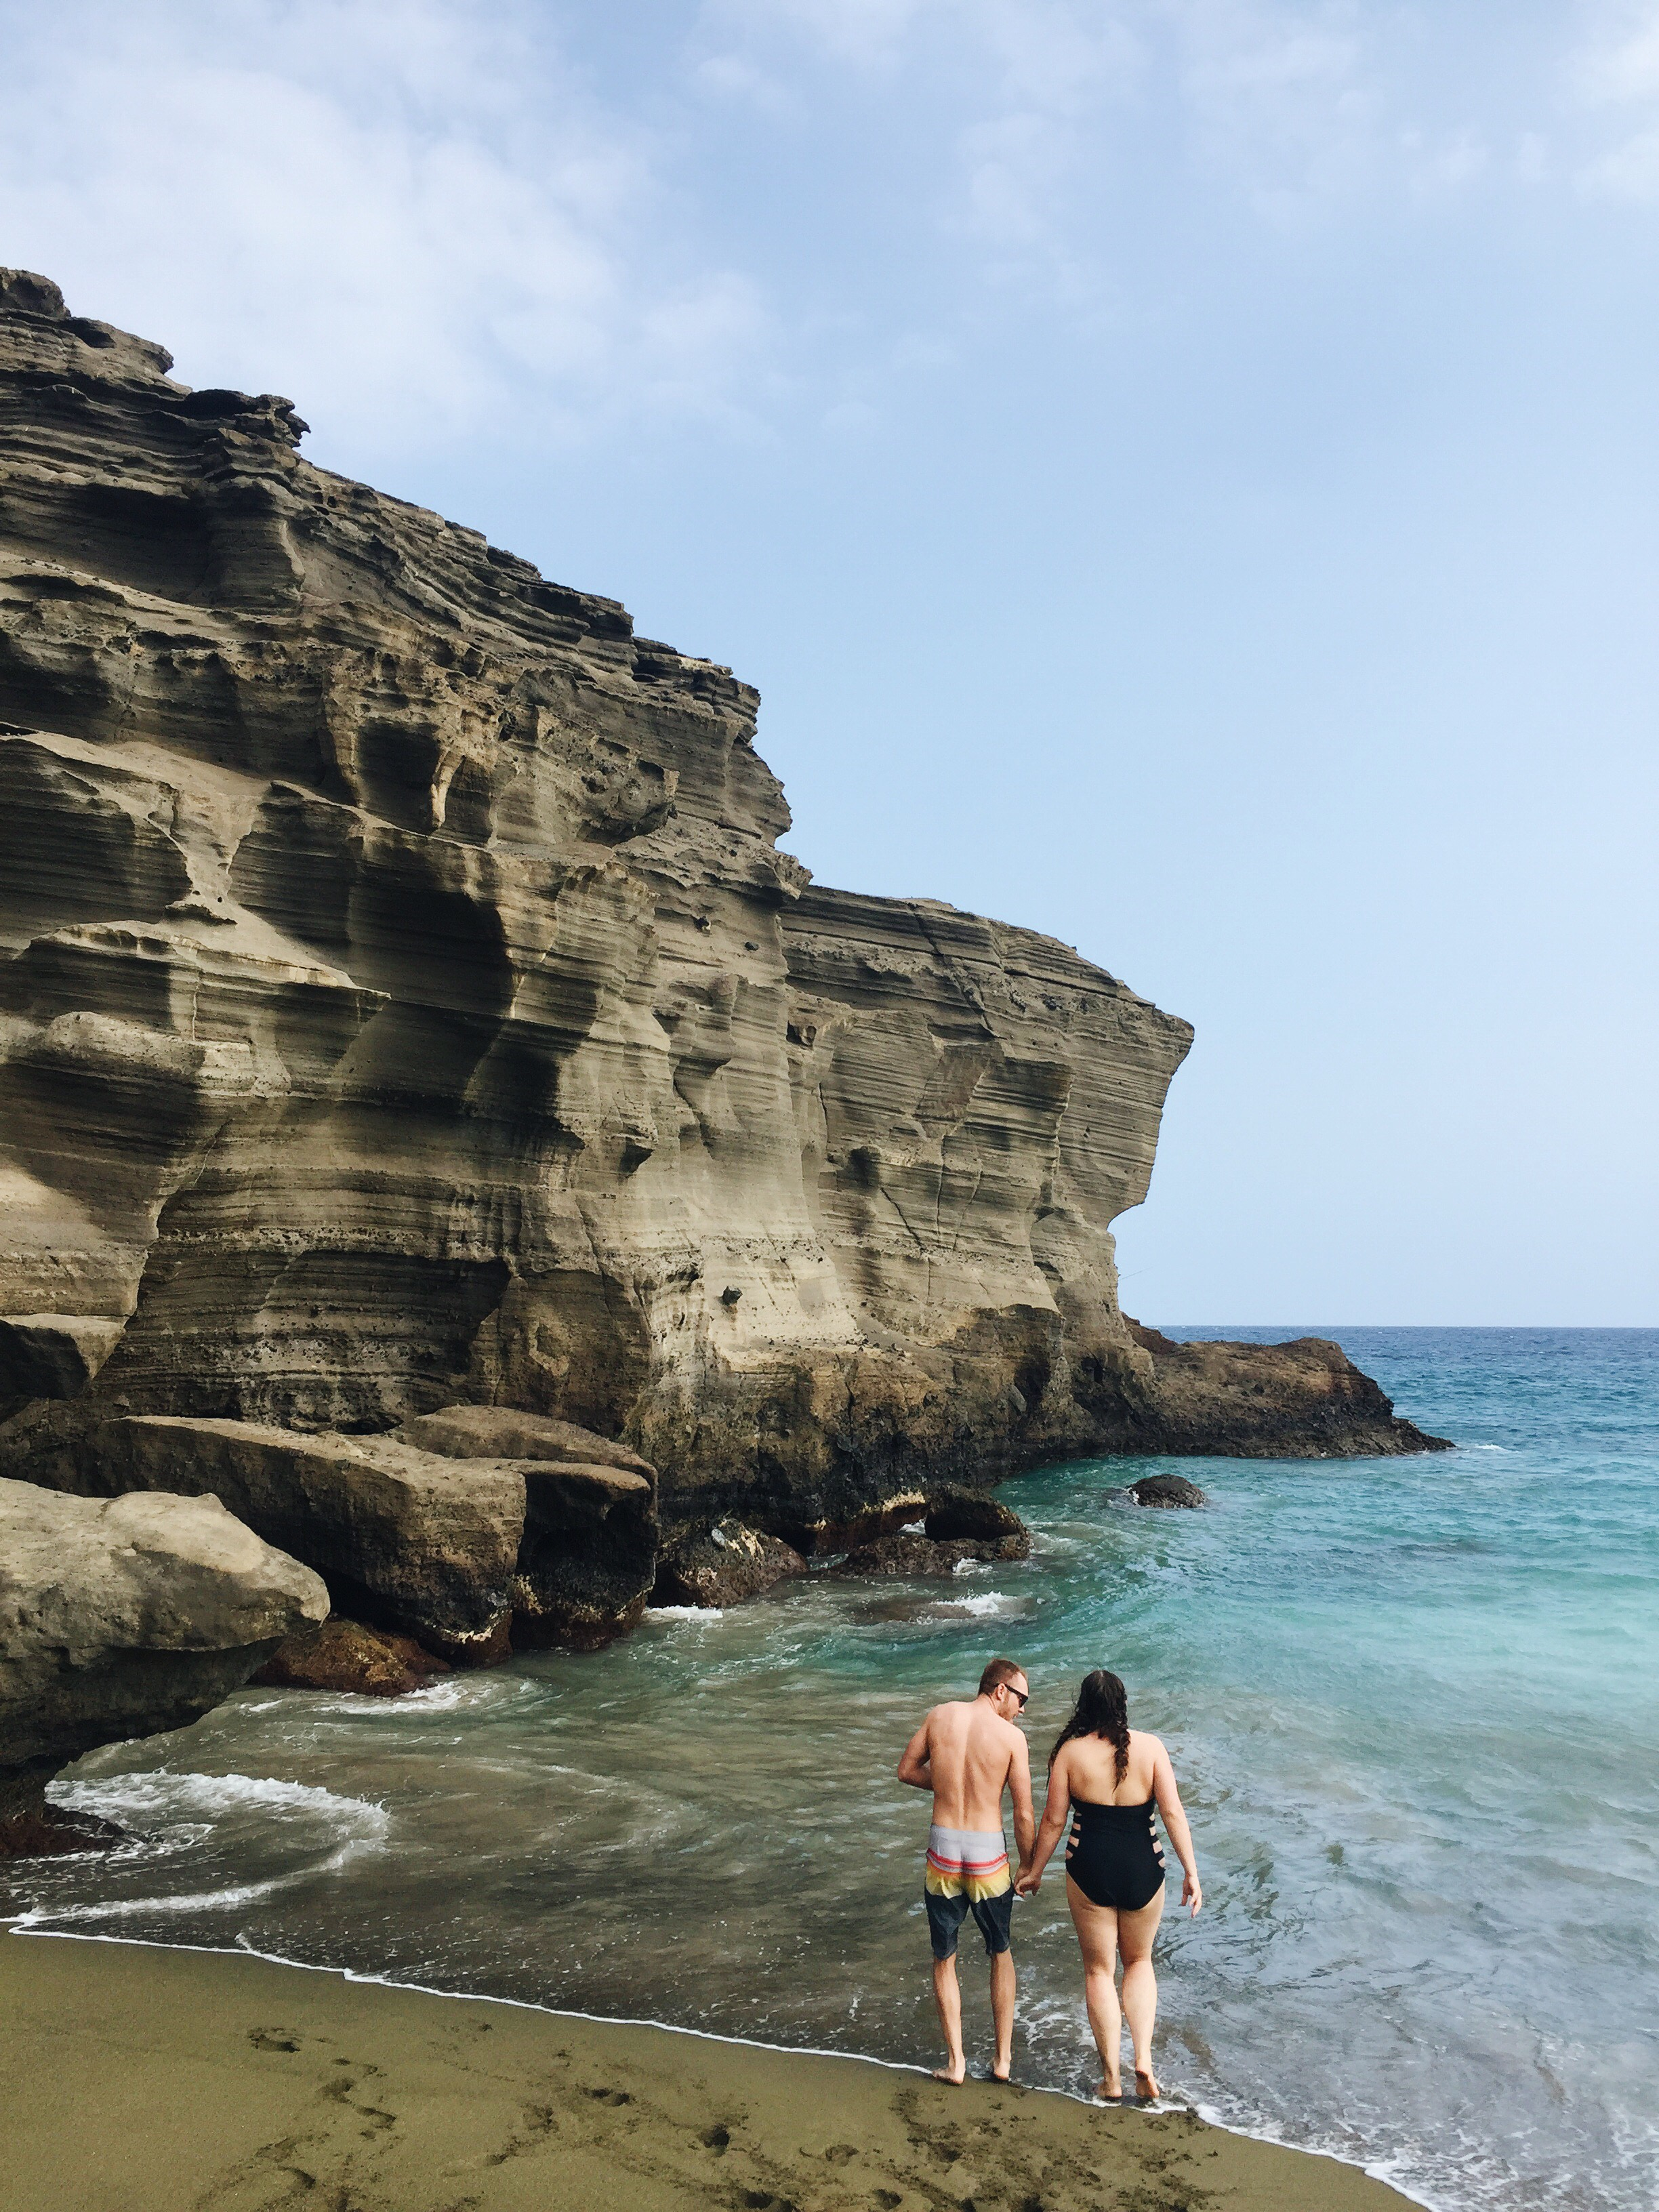 Most Gorgeous Beaches on Earth | Exploring Mahana Bay on The Big Island of Hawaii | Green Sand Beach | Hawaiian Adventures | via elanaloo.com + @elanaloo